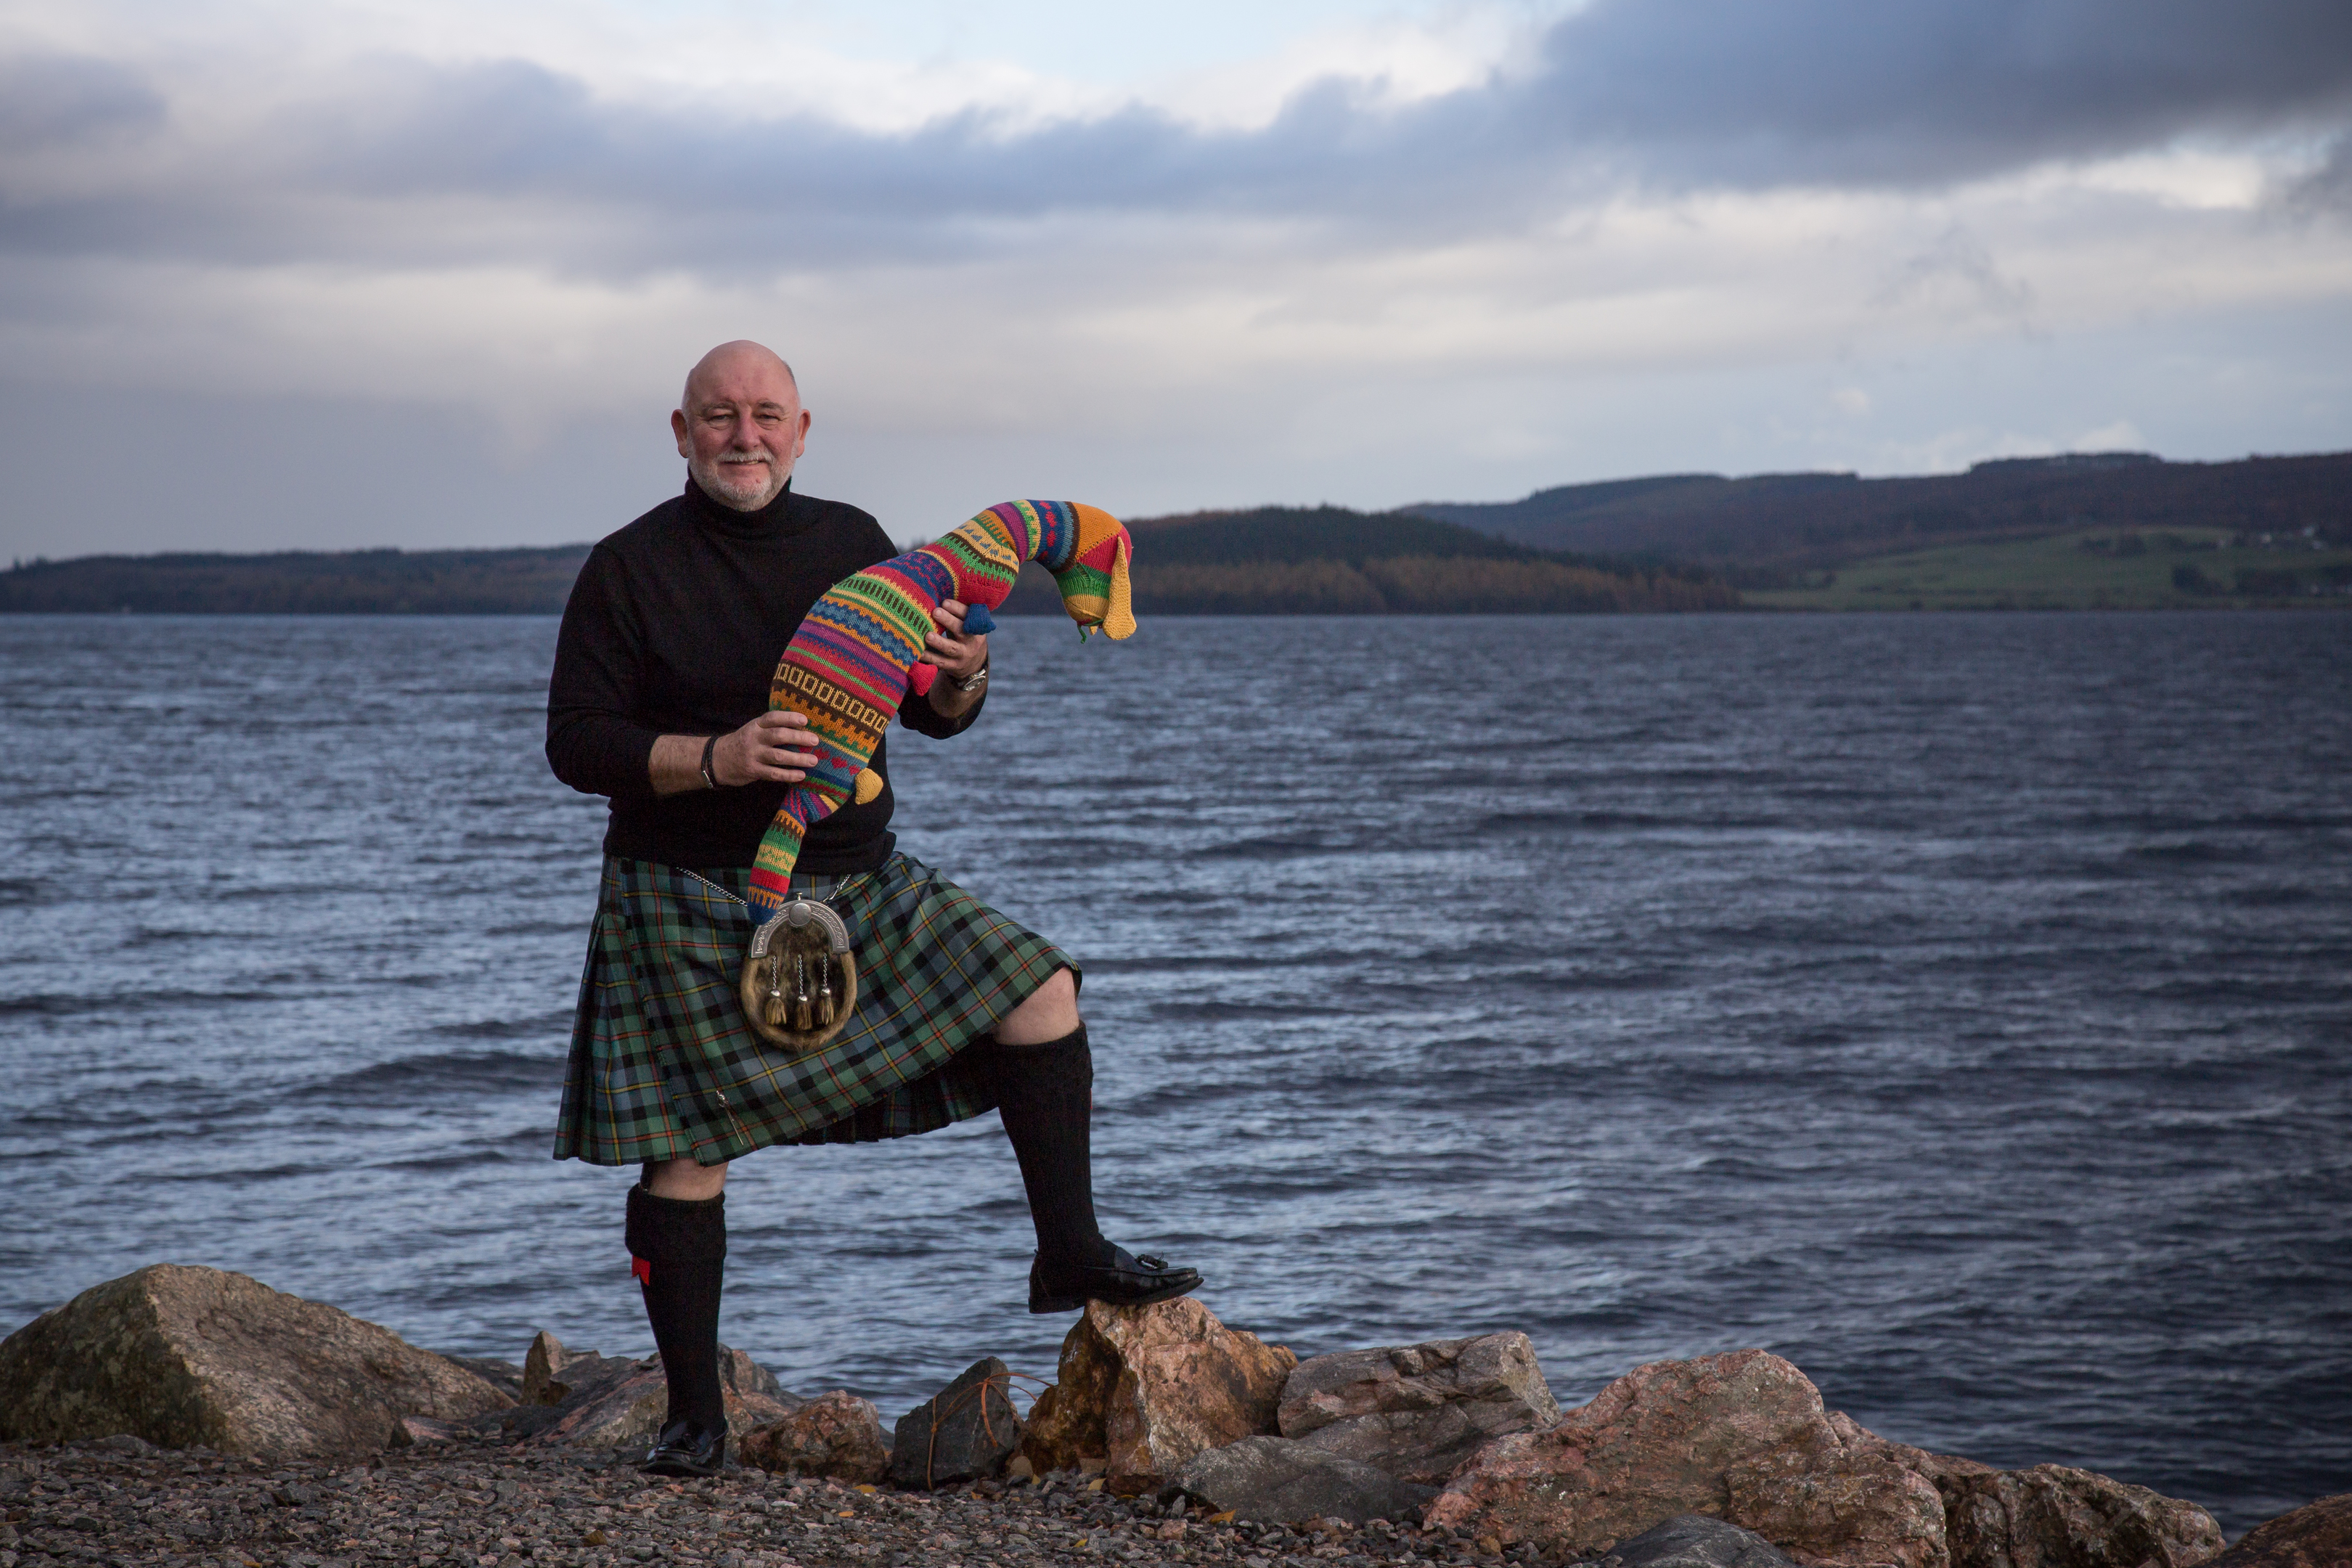 The inaugural Inverness Loch Ness International Knitting Festival will be held next year